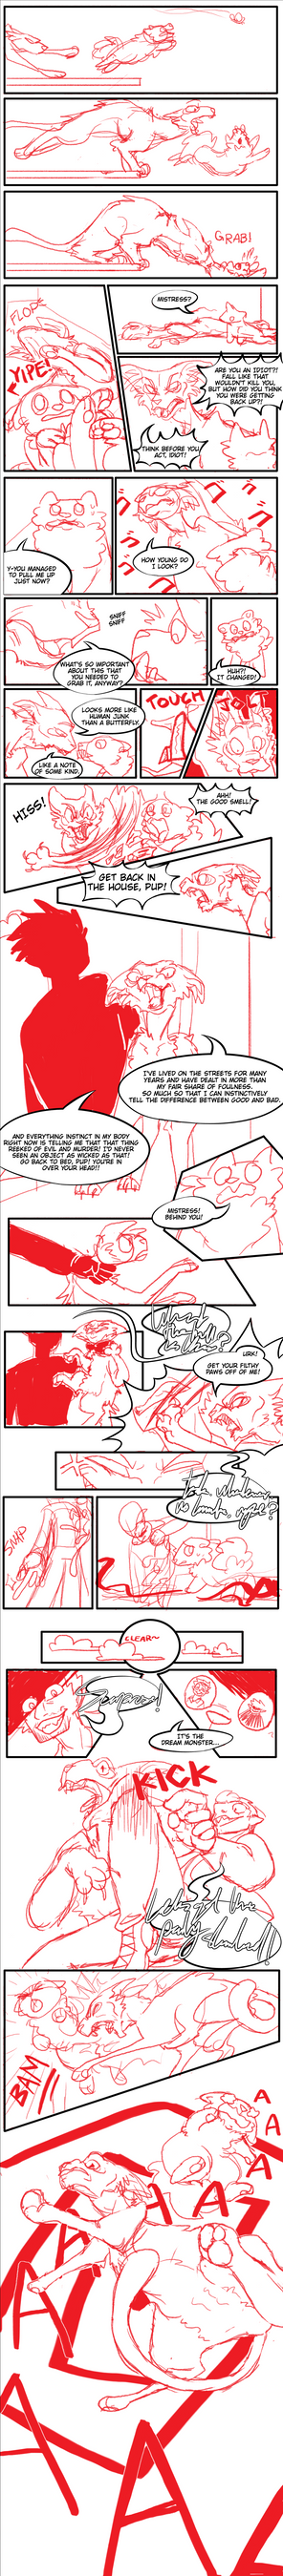 MurderHouse OCT Audition Page 3: Chase